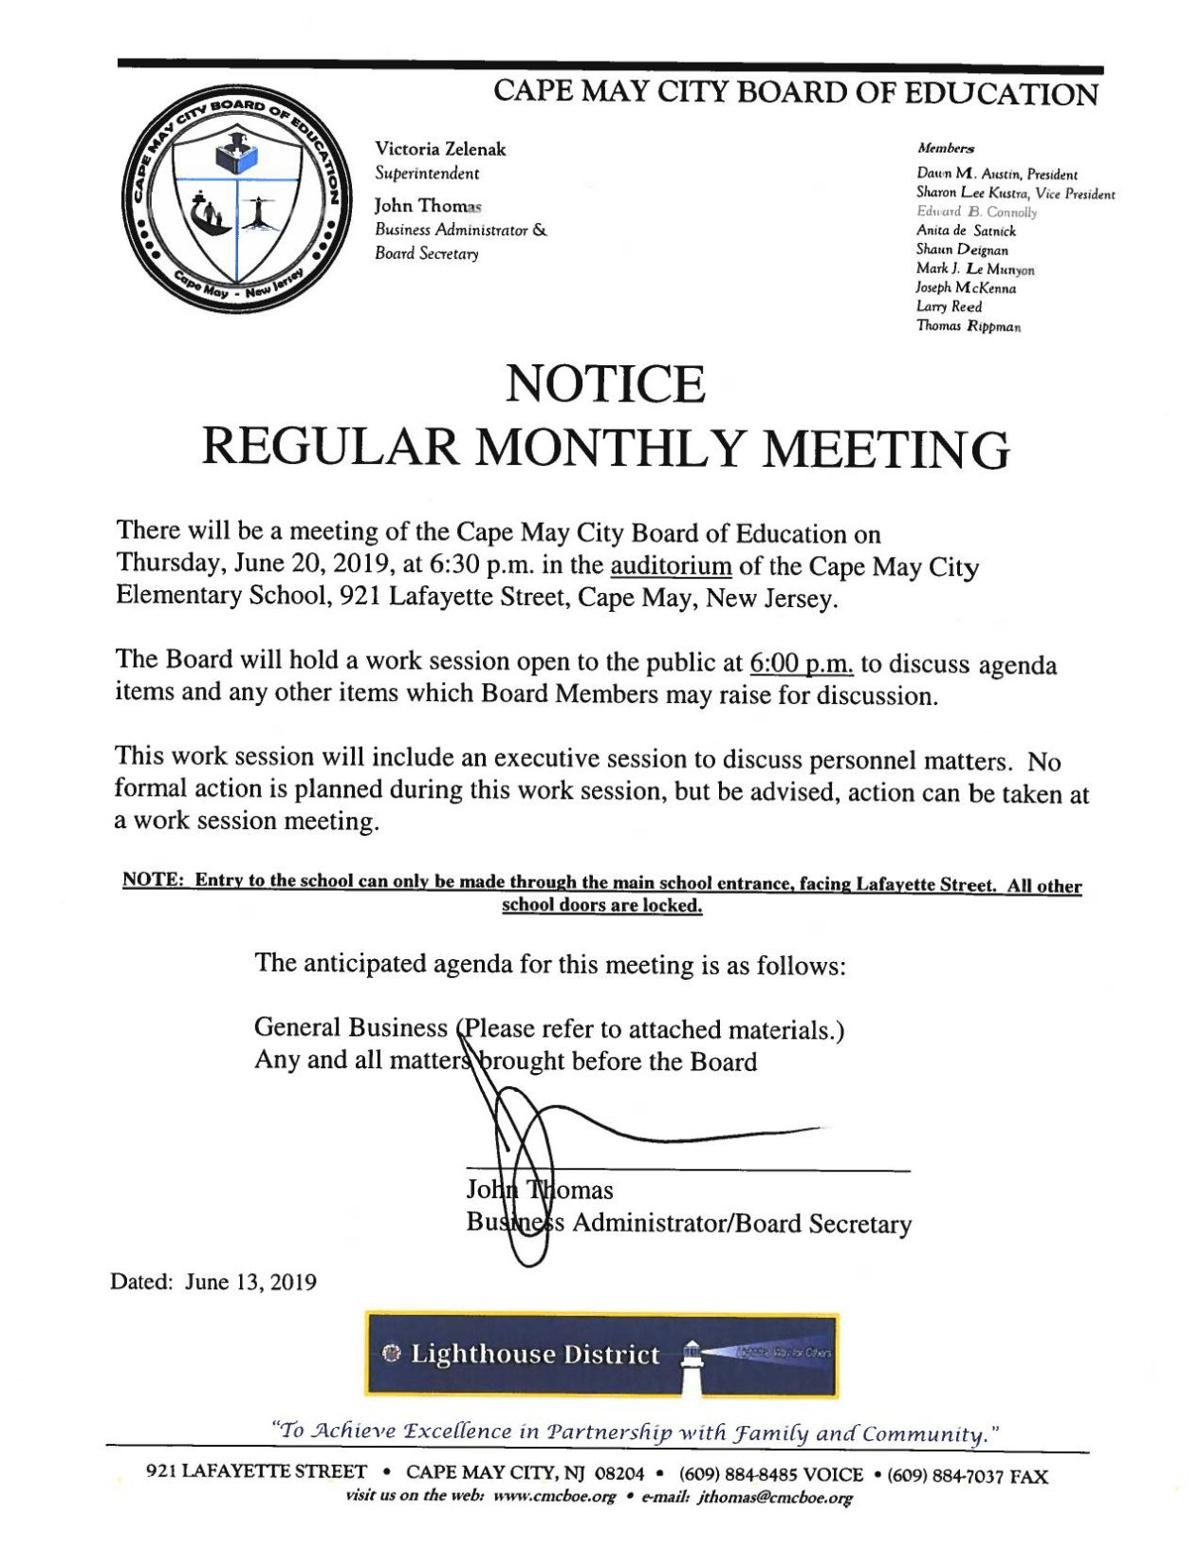 Cape May City Board of Education June 20, 2019